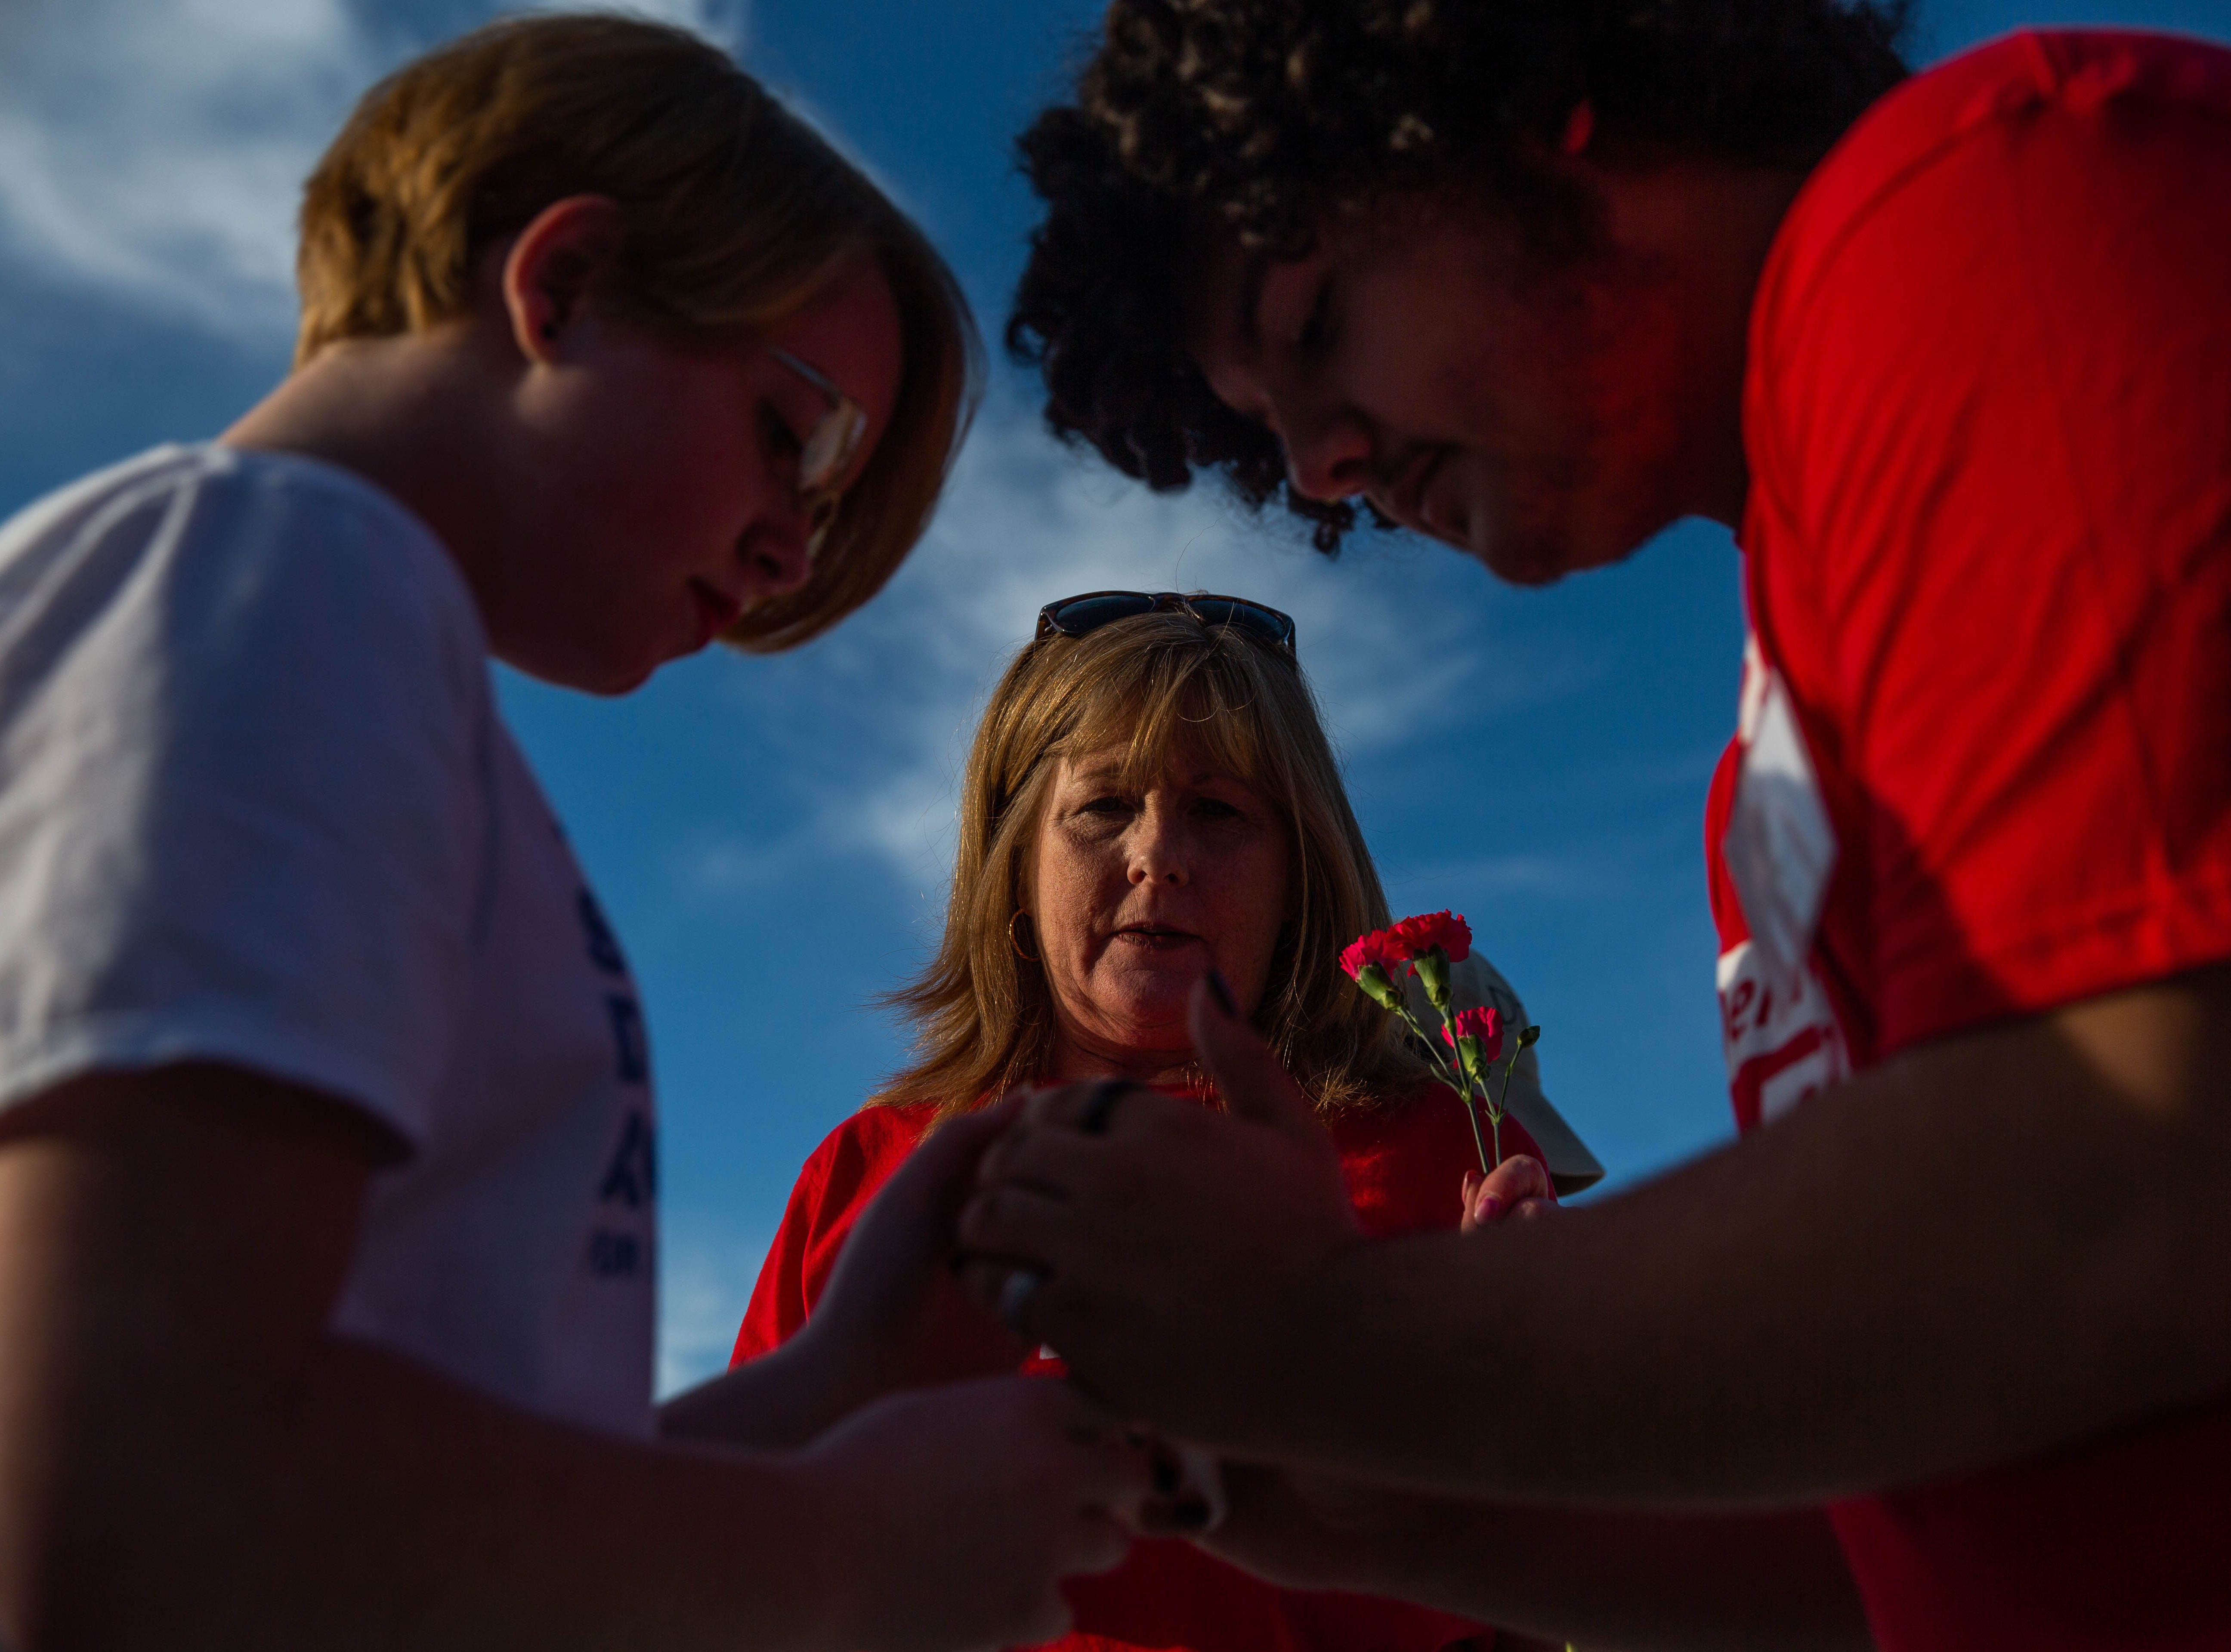 Kathy O'Brien watches as her daughter Michaela O'Brien and student Zac Vega light their candles at a student-organized vigil at Naples Pier on February 14, 2019. The vigil was in remembrance of the 17 lives lost in Parkland one year ago.